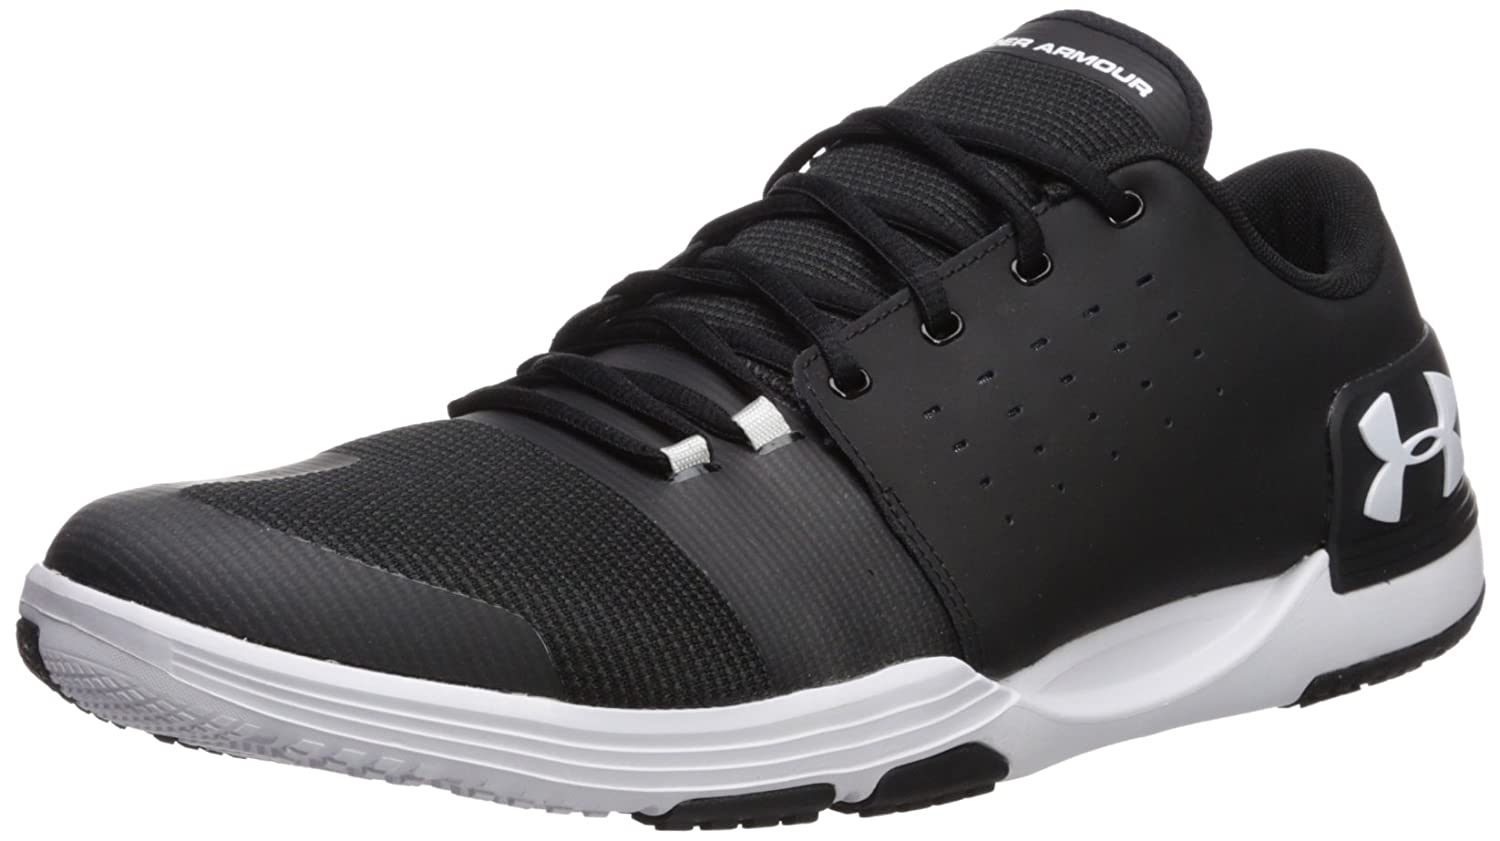 Under Armour Herren UA Limitless Tr 3.0 1295776-001 Hallenschuhe